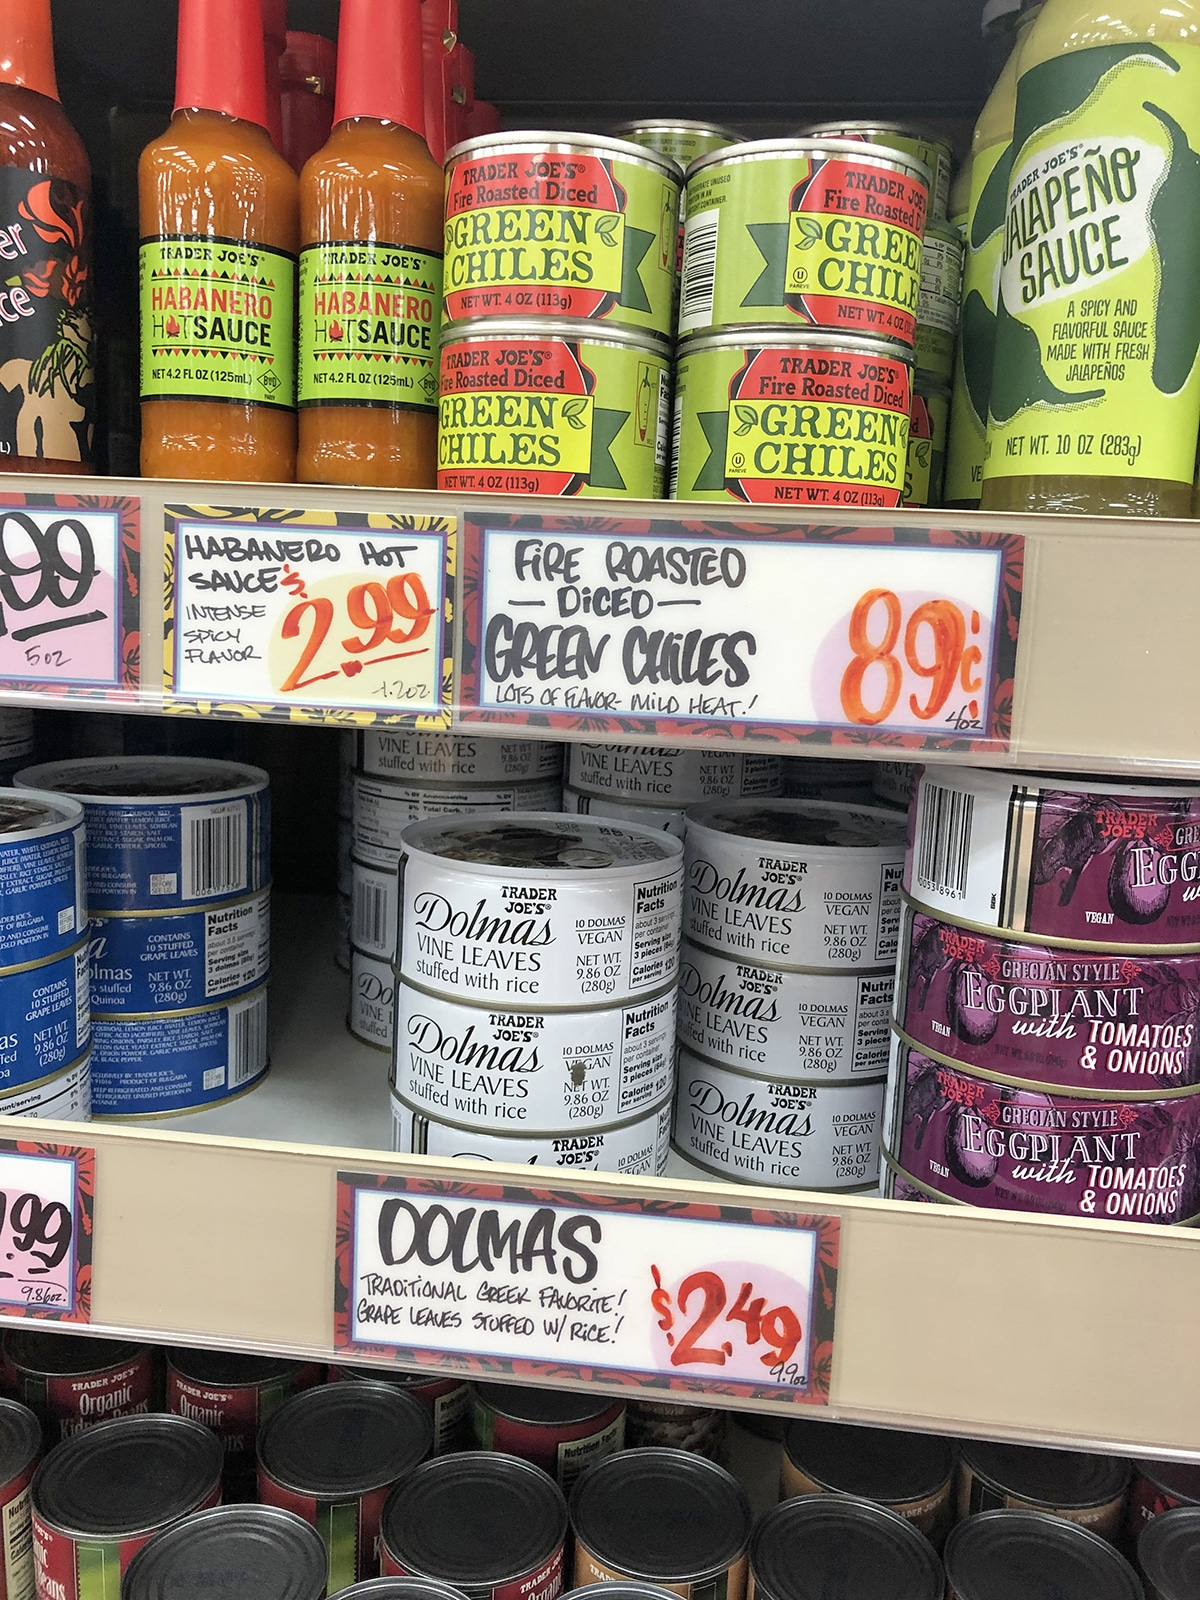 Store shelf at Trader Joe's with dolmas, chilies, and hot sauce.